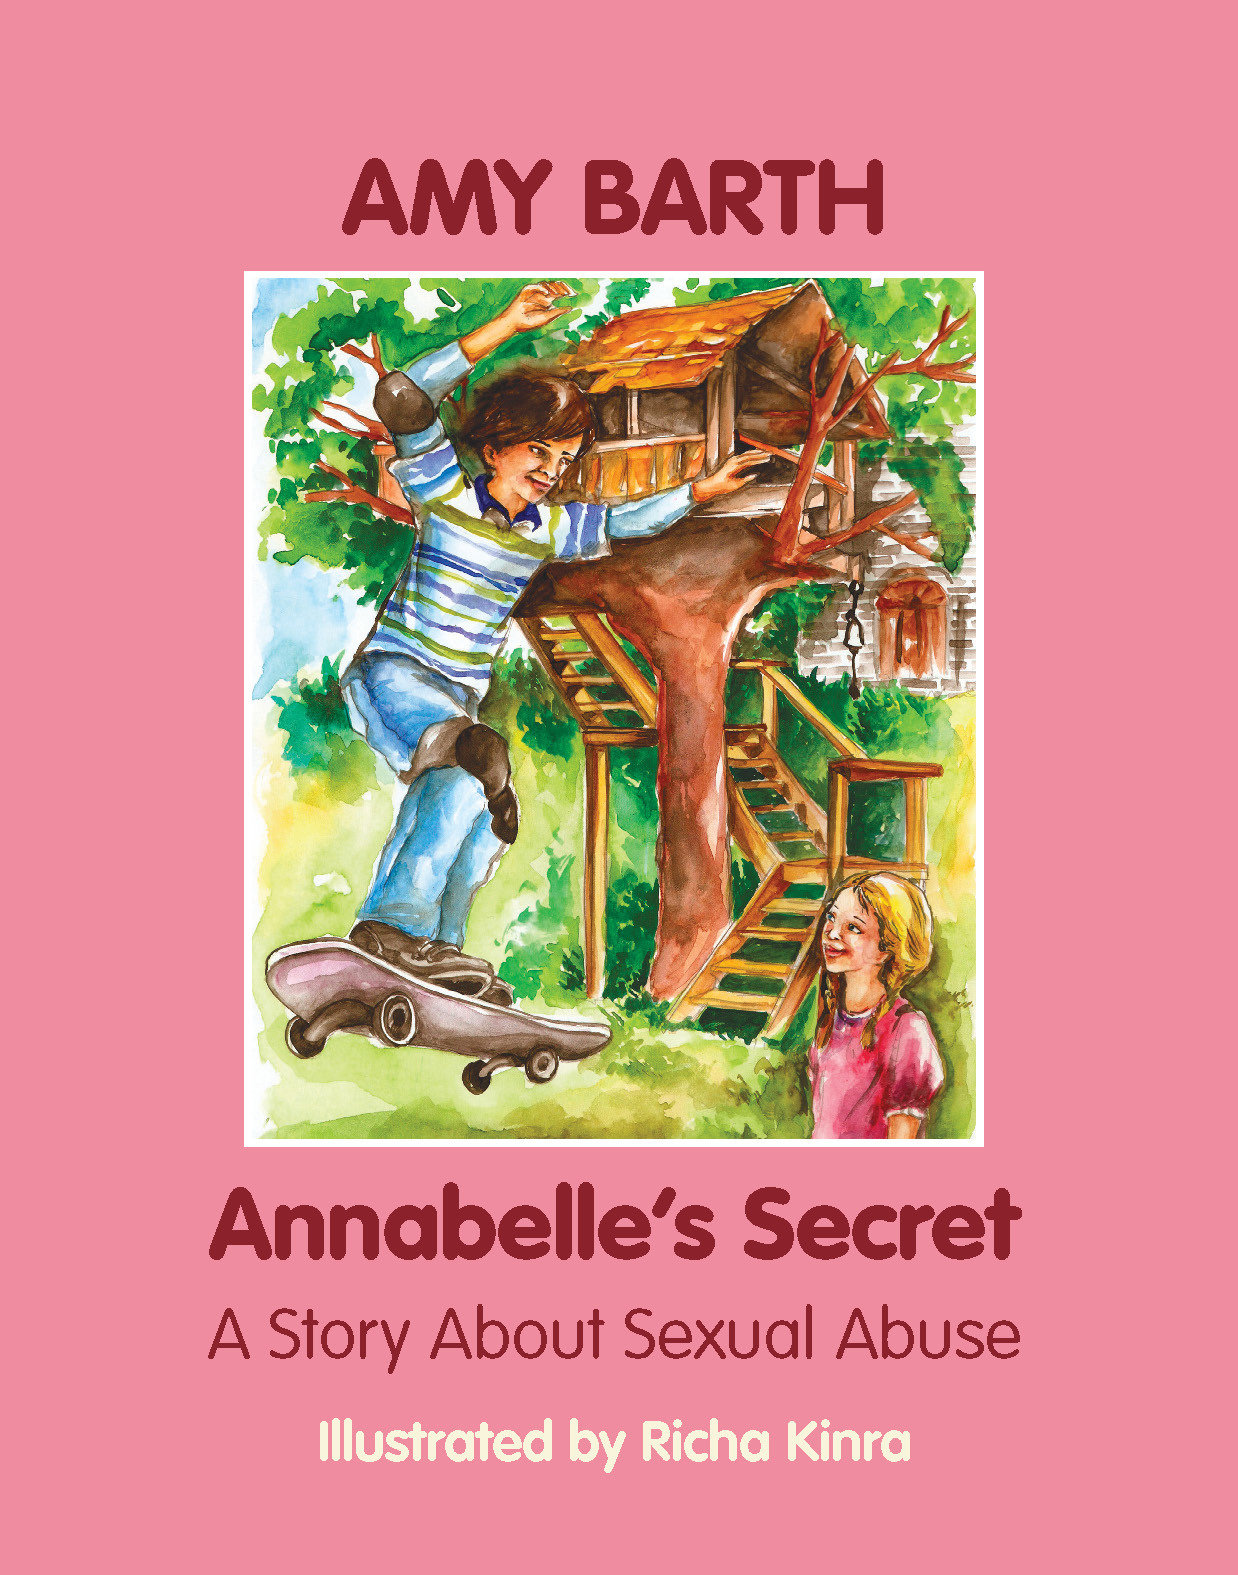 Annabelle's Secret: A Story about Sexual Abuse 978-1-932690-95-8